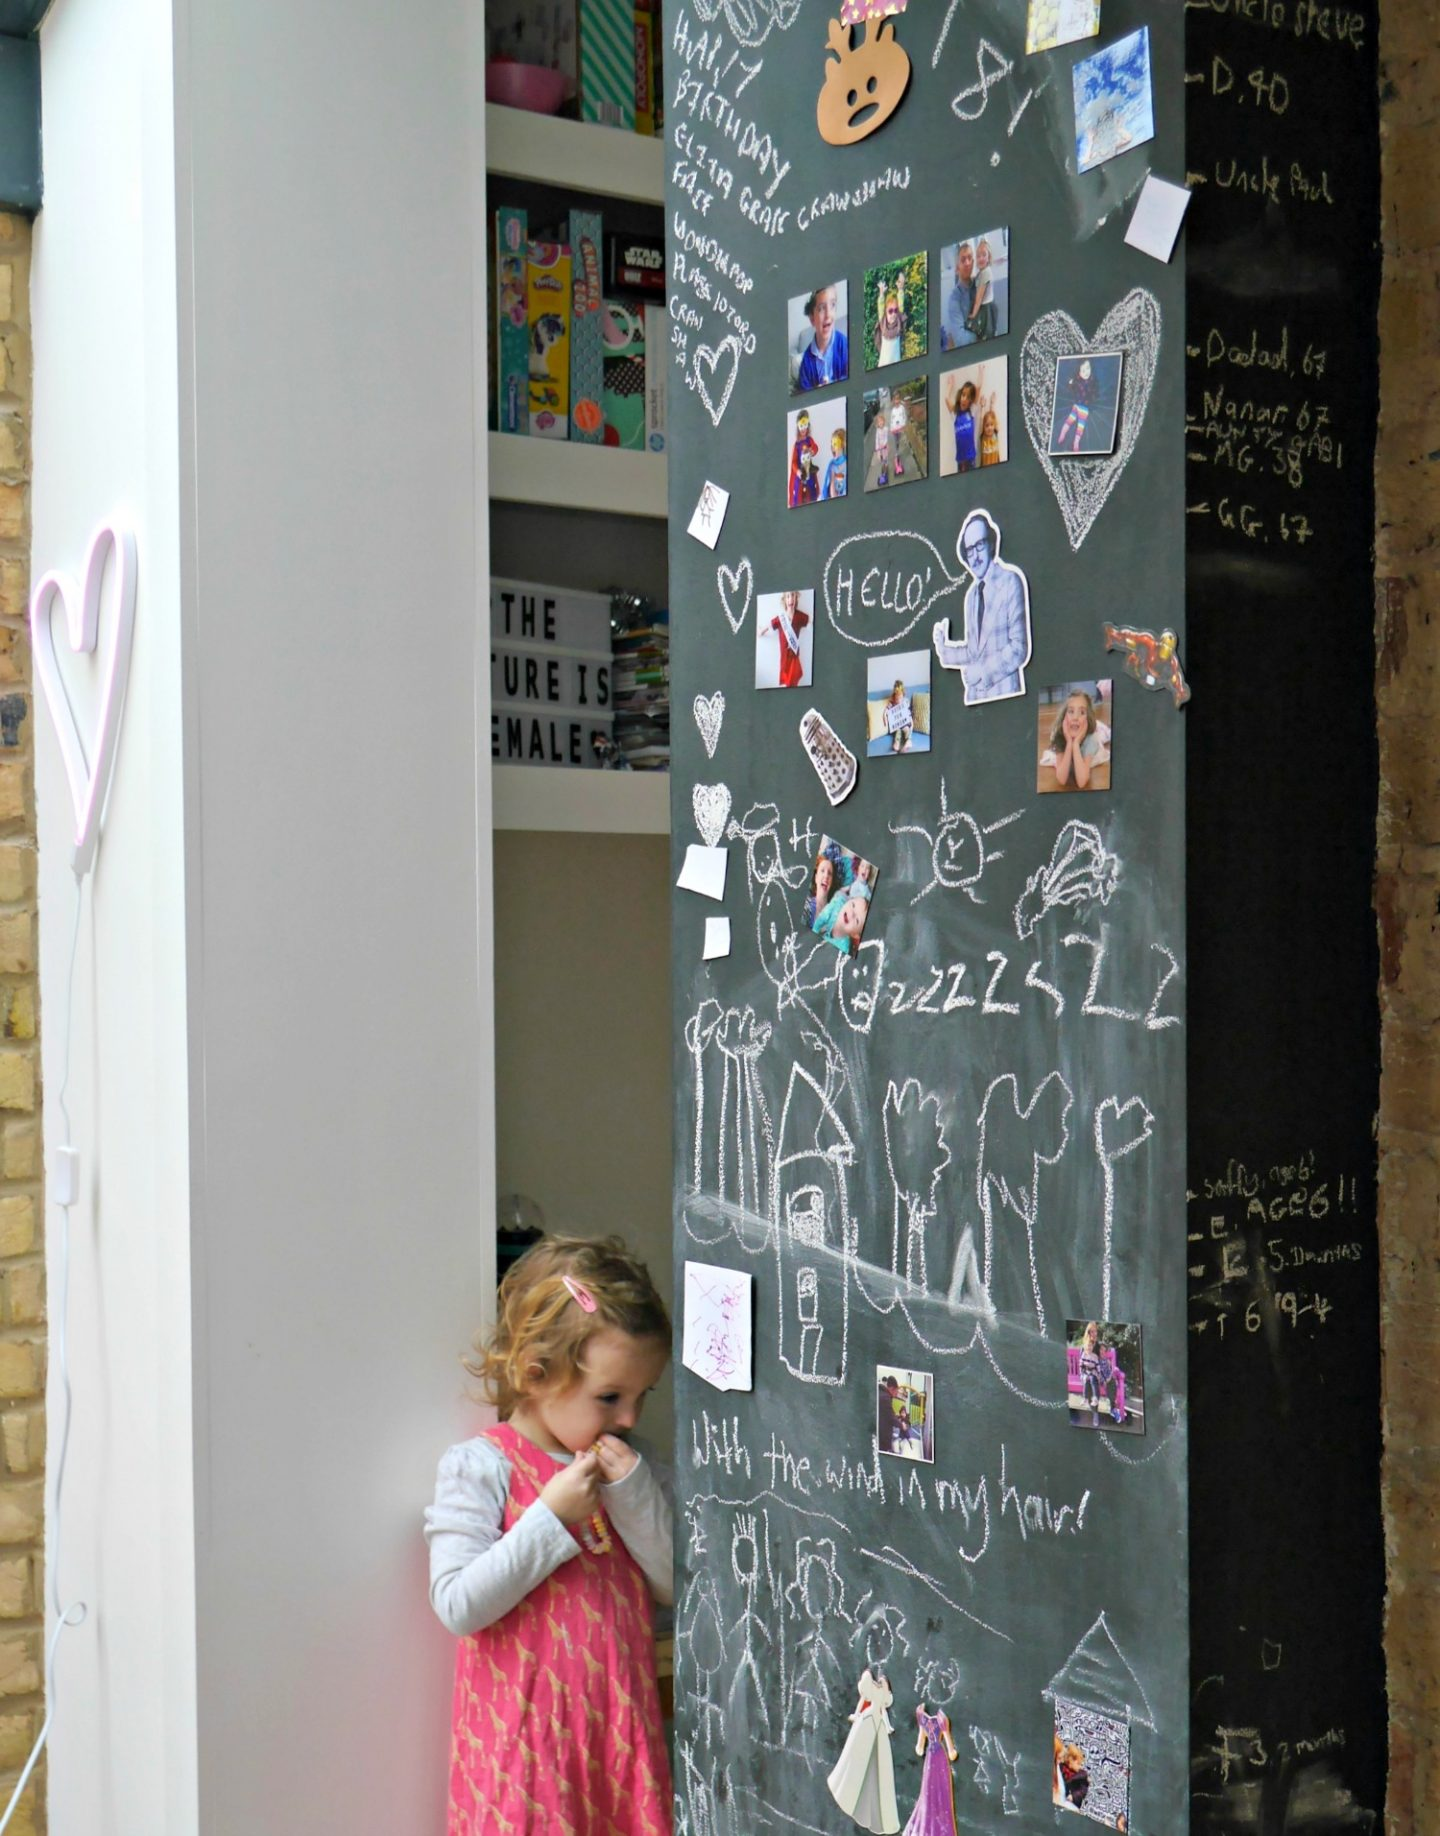 Magnetic chalkboard walls - side return extension in Victorian terrace in London